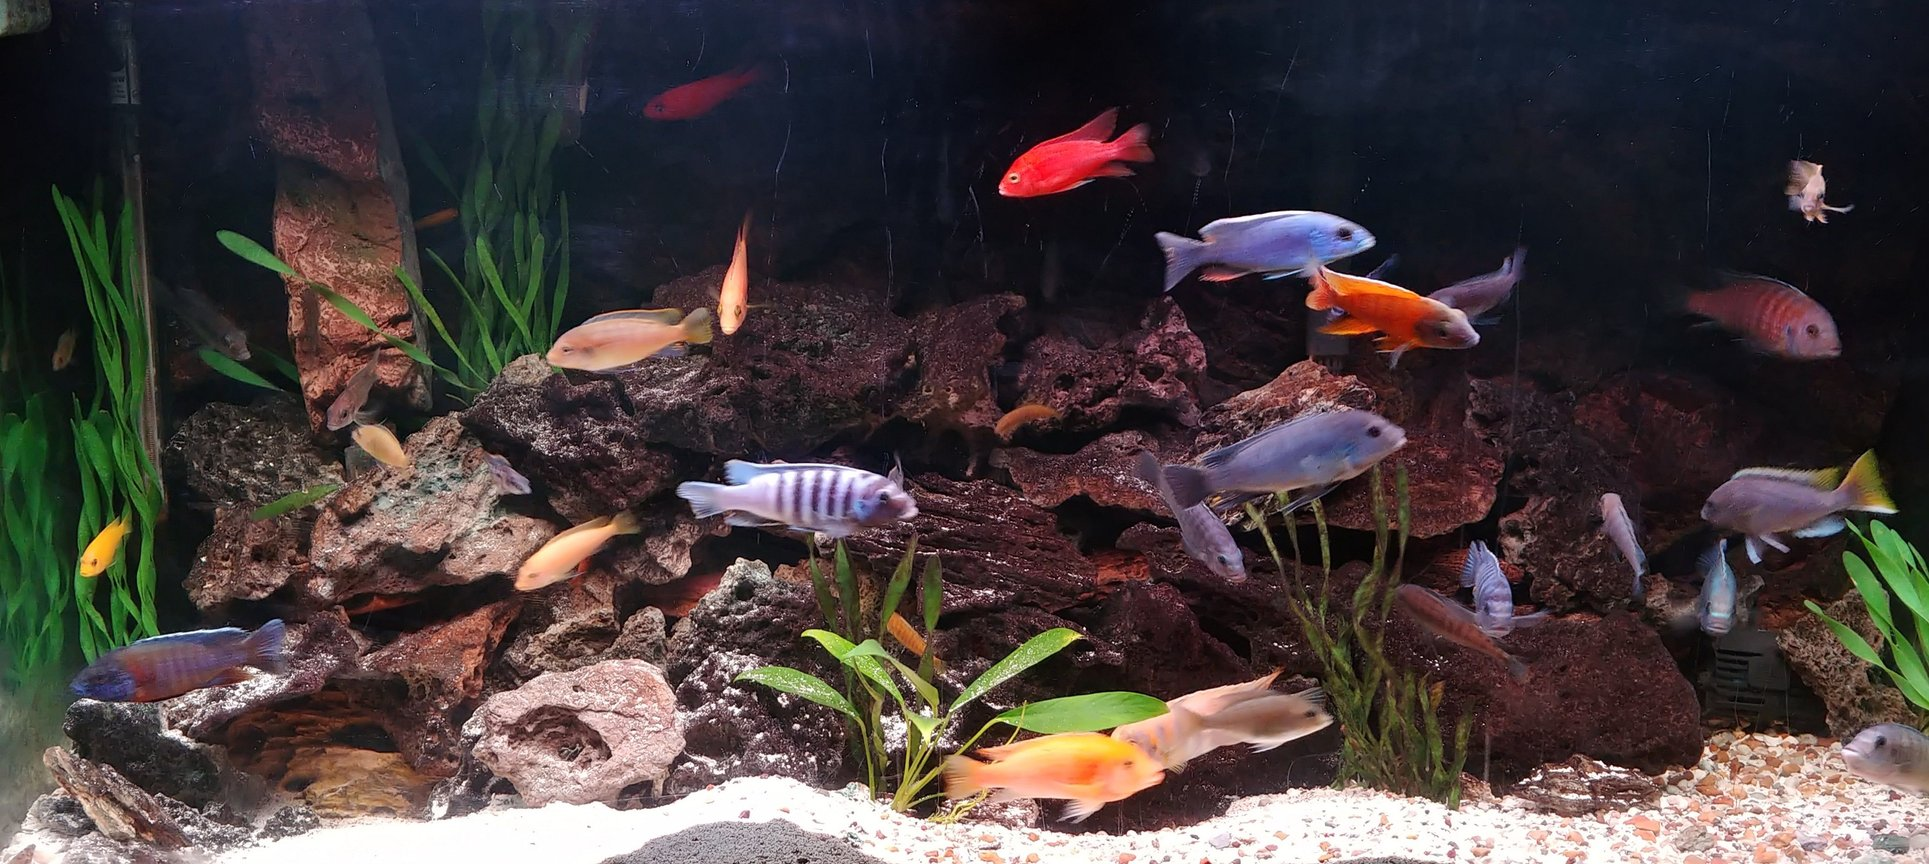 90 gallons freshwater fish tank (mostly fish and non-living decorations) - latest tank picture